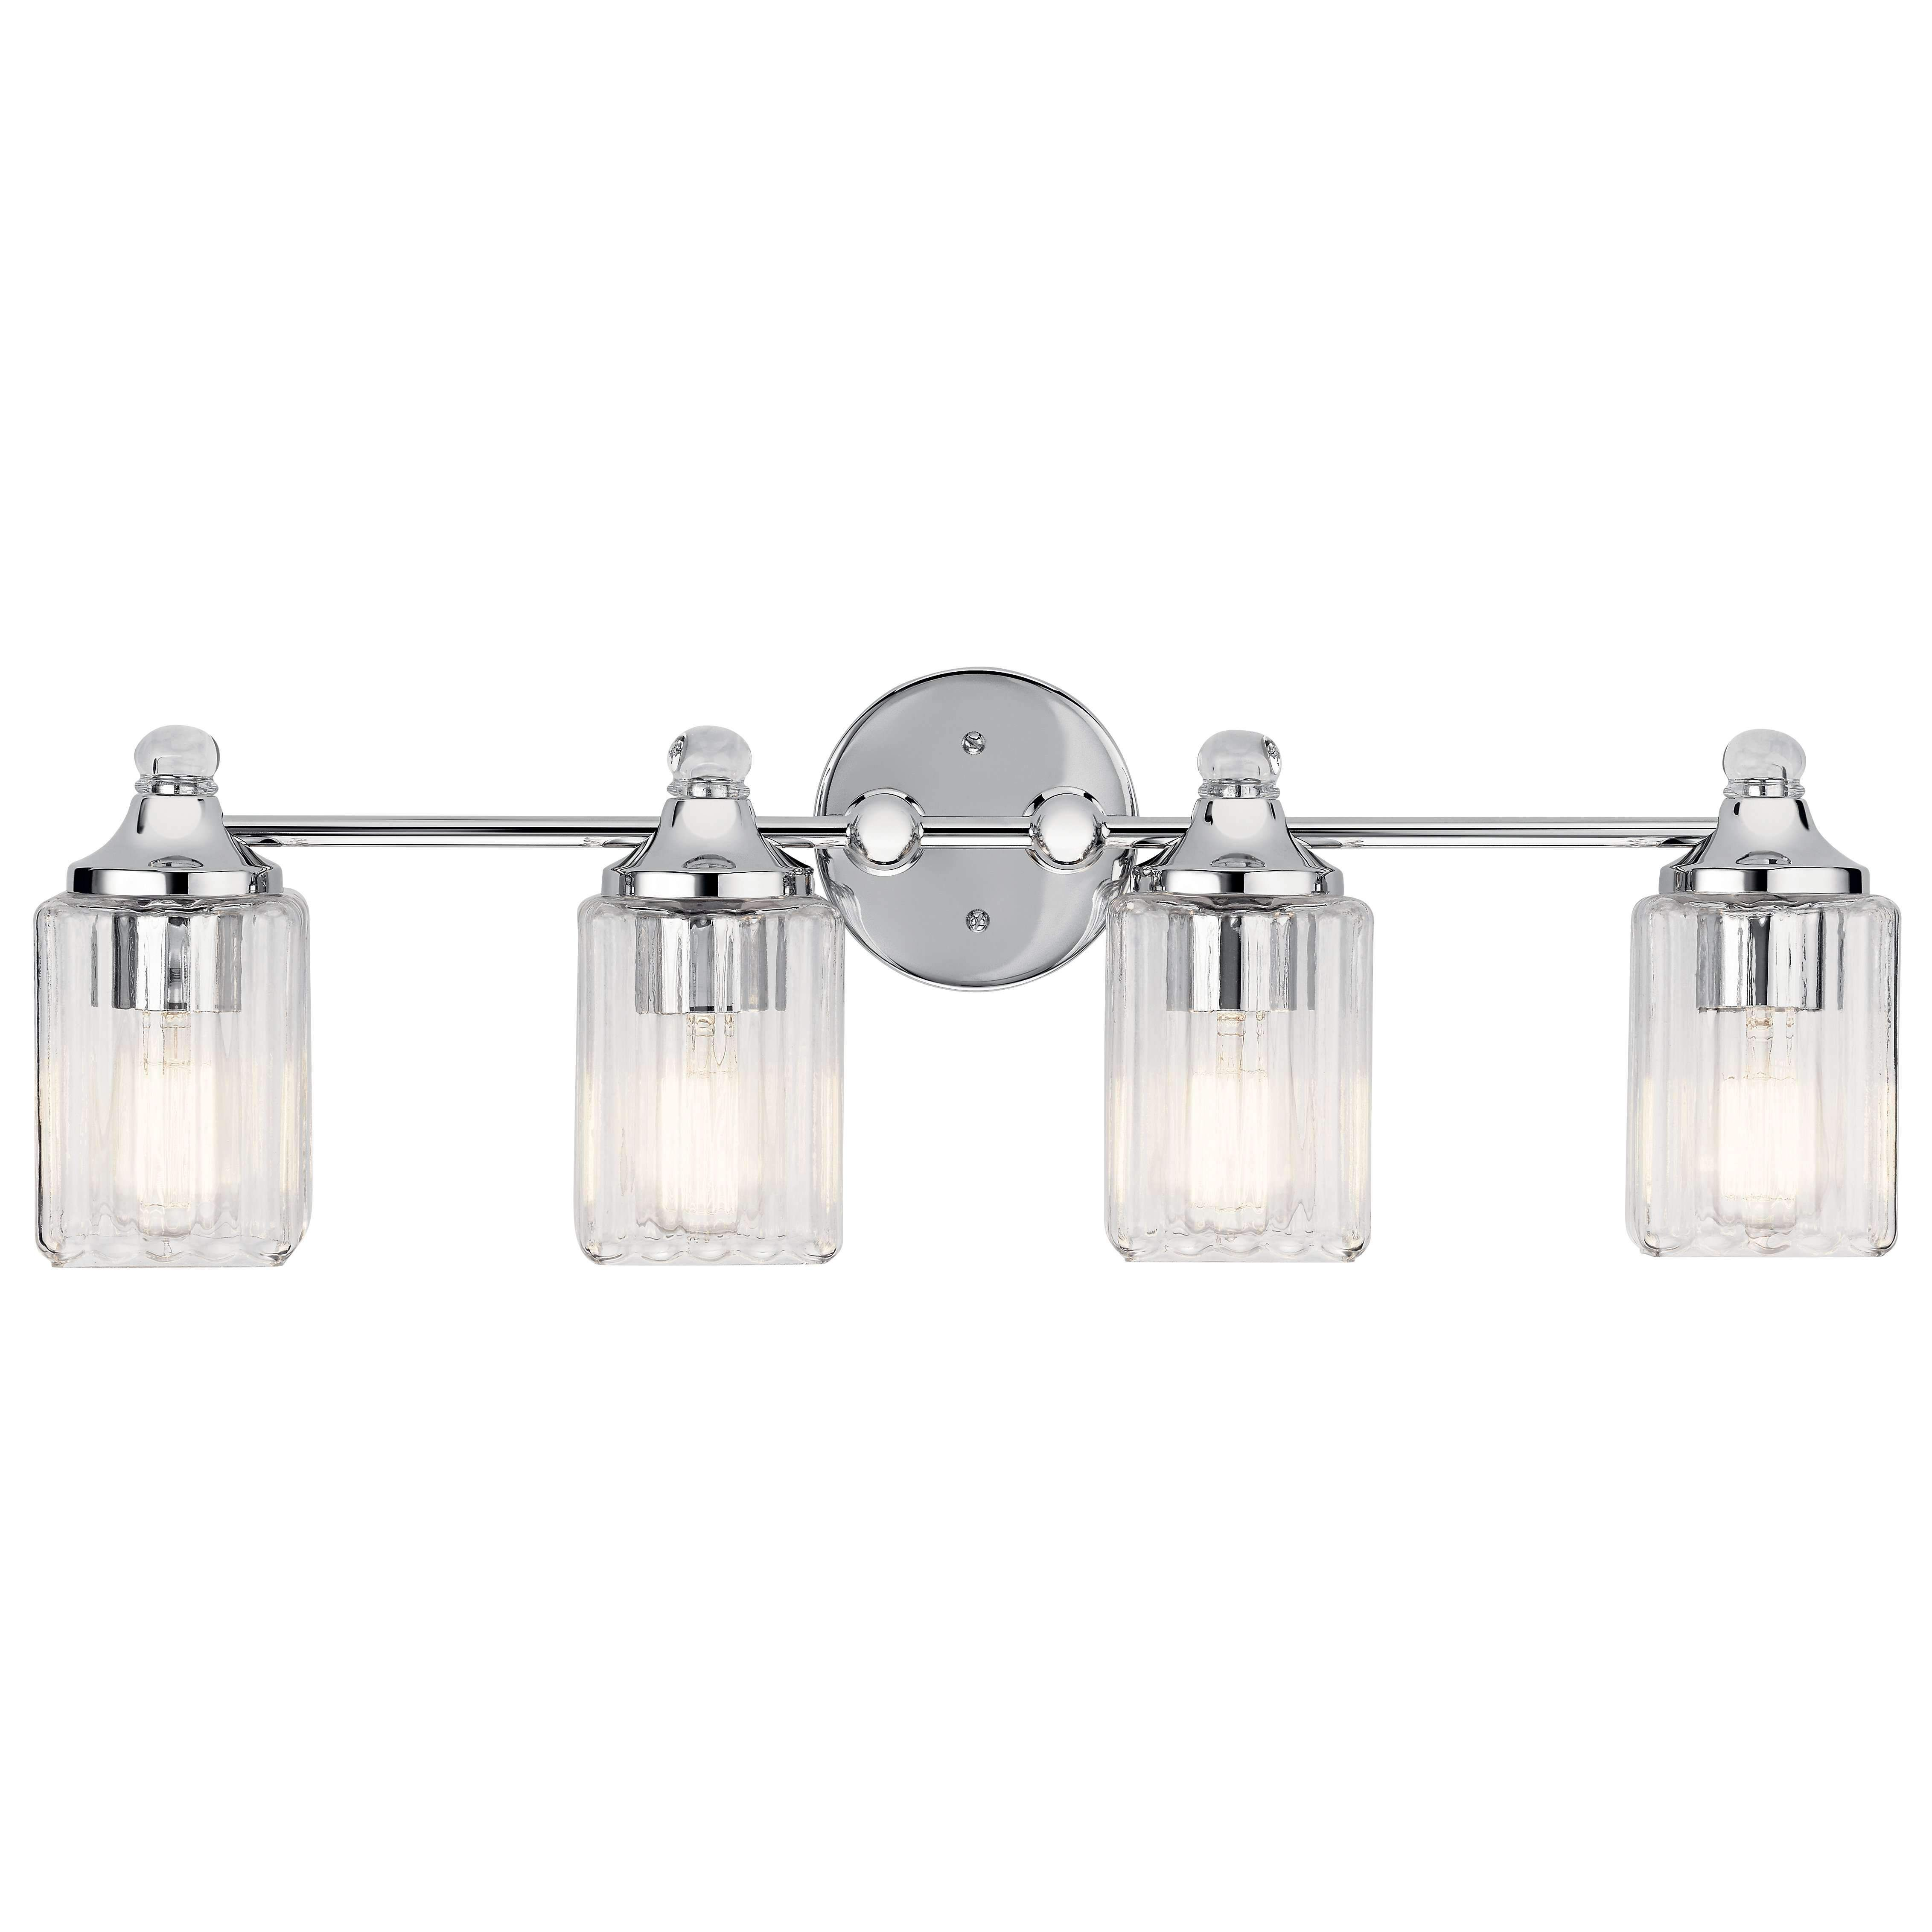 Riviera Bath 4 Light Chrome Vanity Lighting Bathroom Vanity Lighting Bath Vanity Lighting